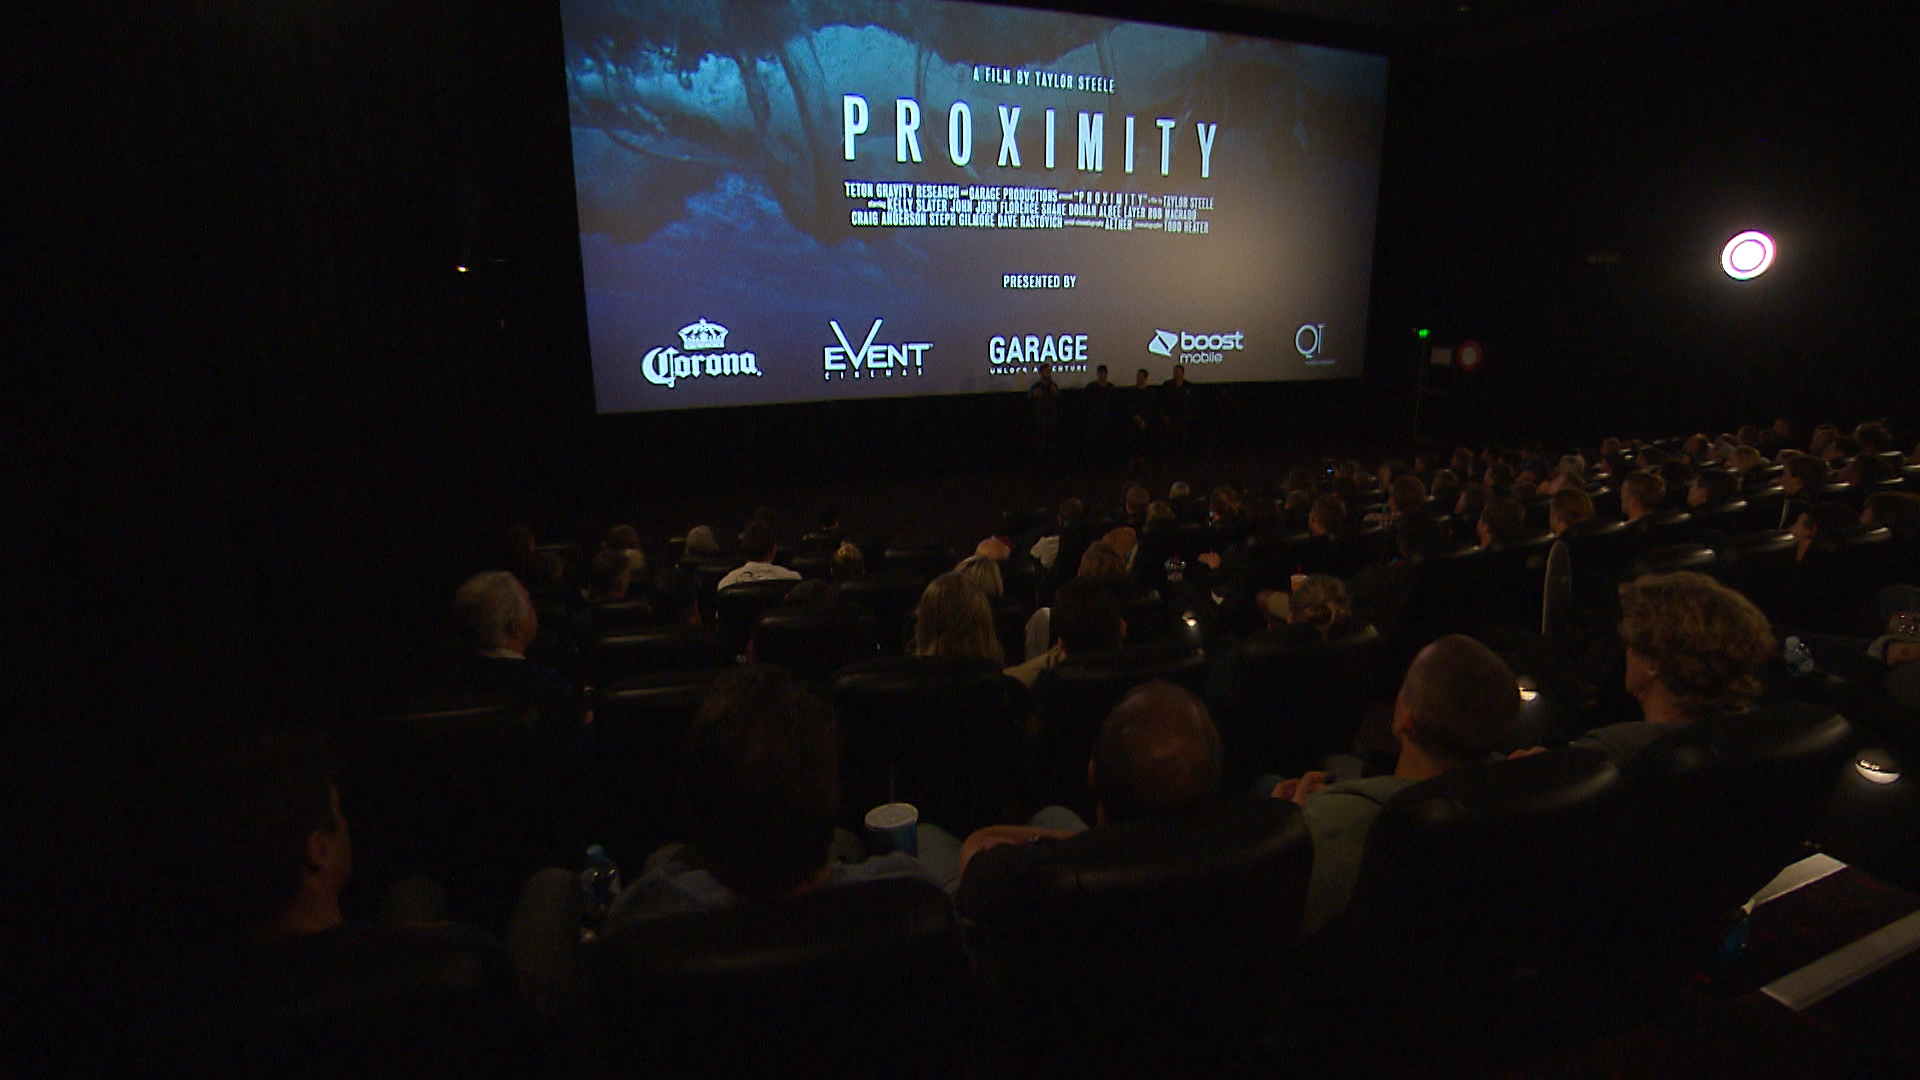 Watch : PROXIMITY Gold Coast Premiere Q+A with Taylor Steele, Kelly Slater